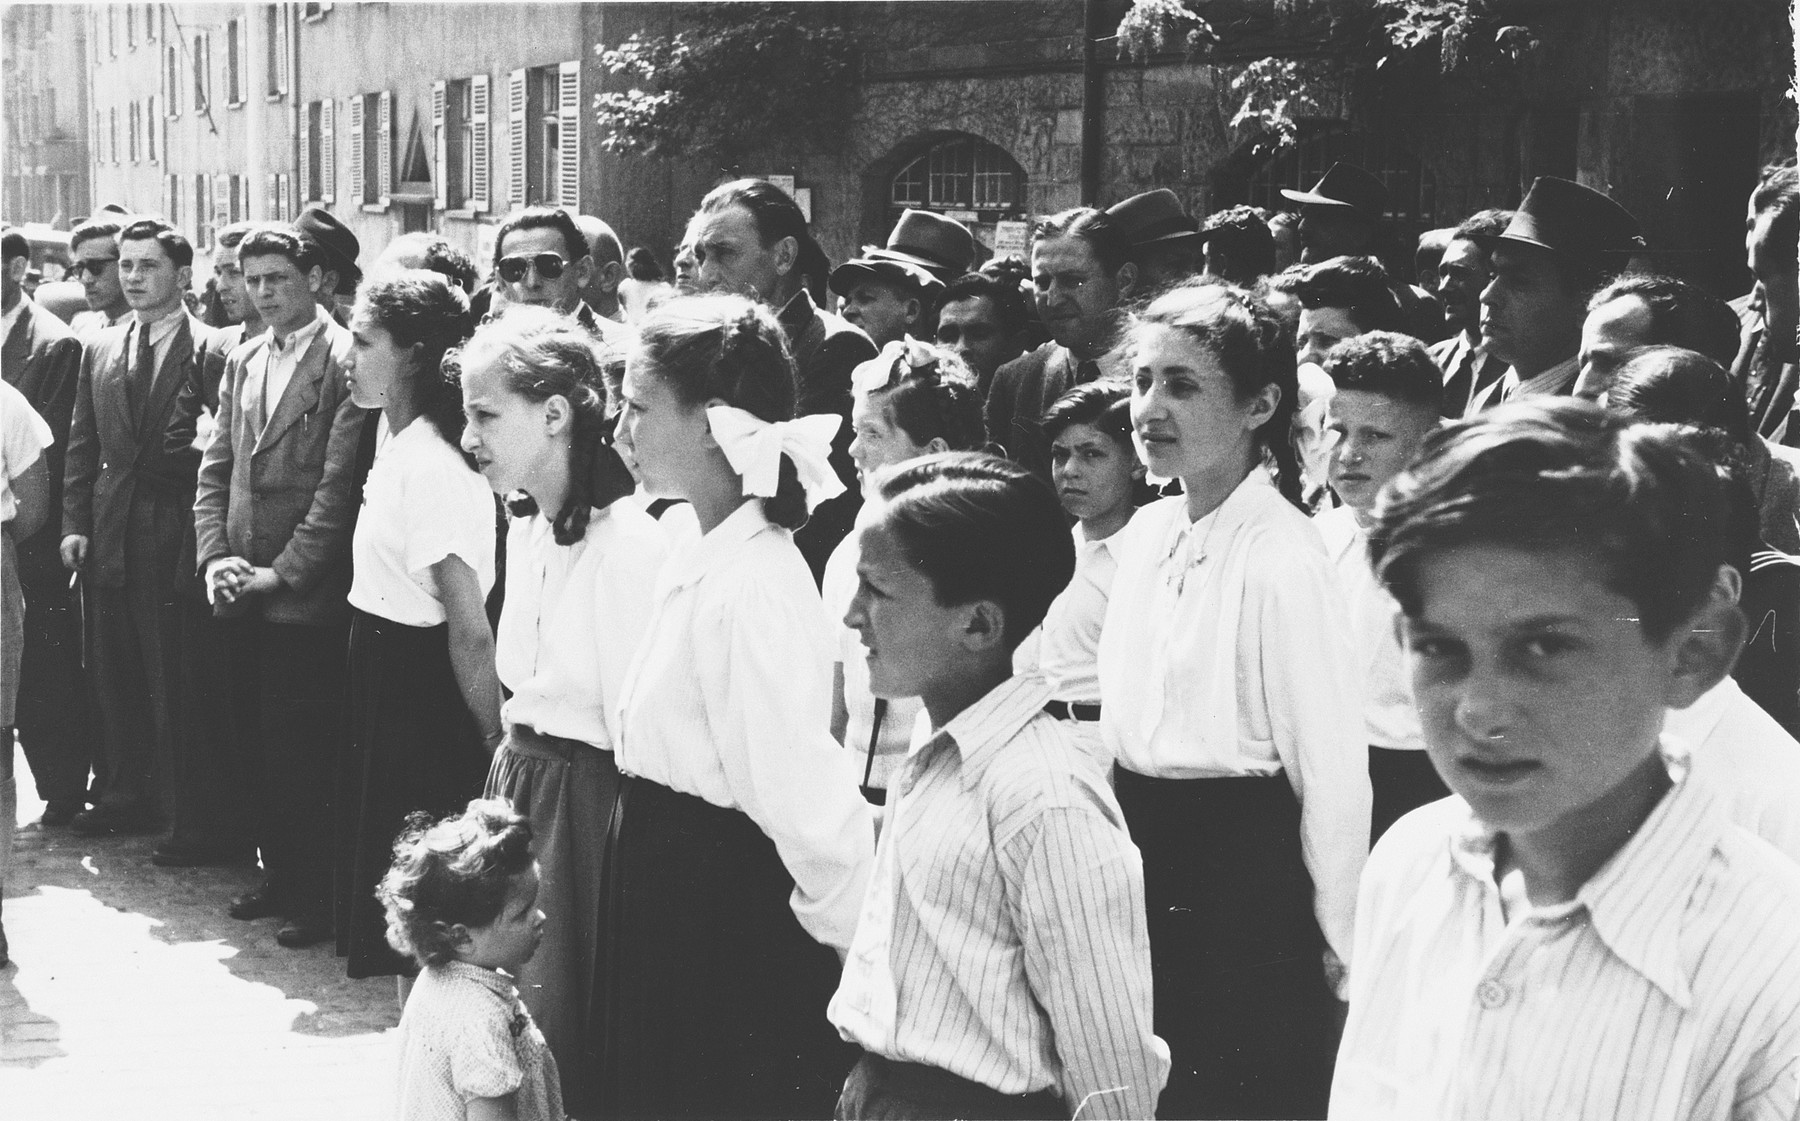 School children gather for a ceremony marking Israel's independence in the Stuttgart displaced persons' camp.